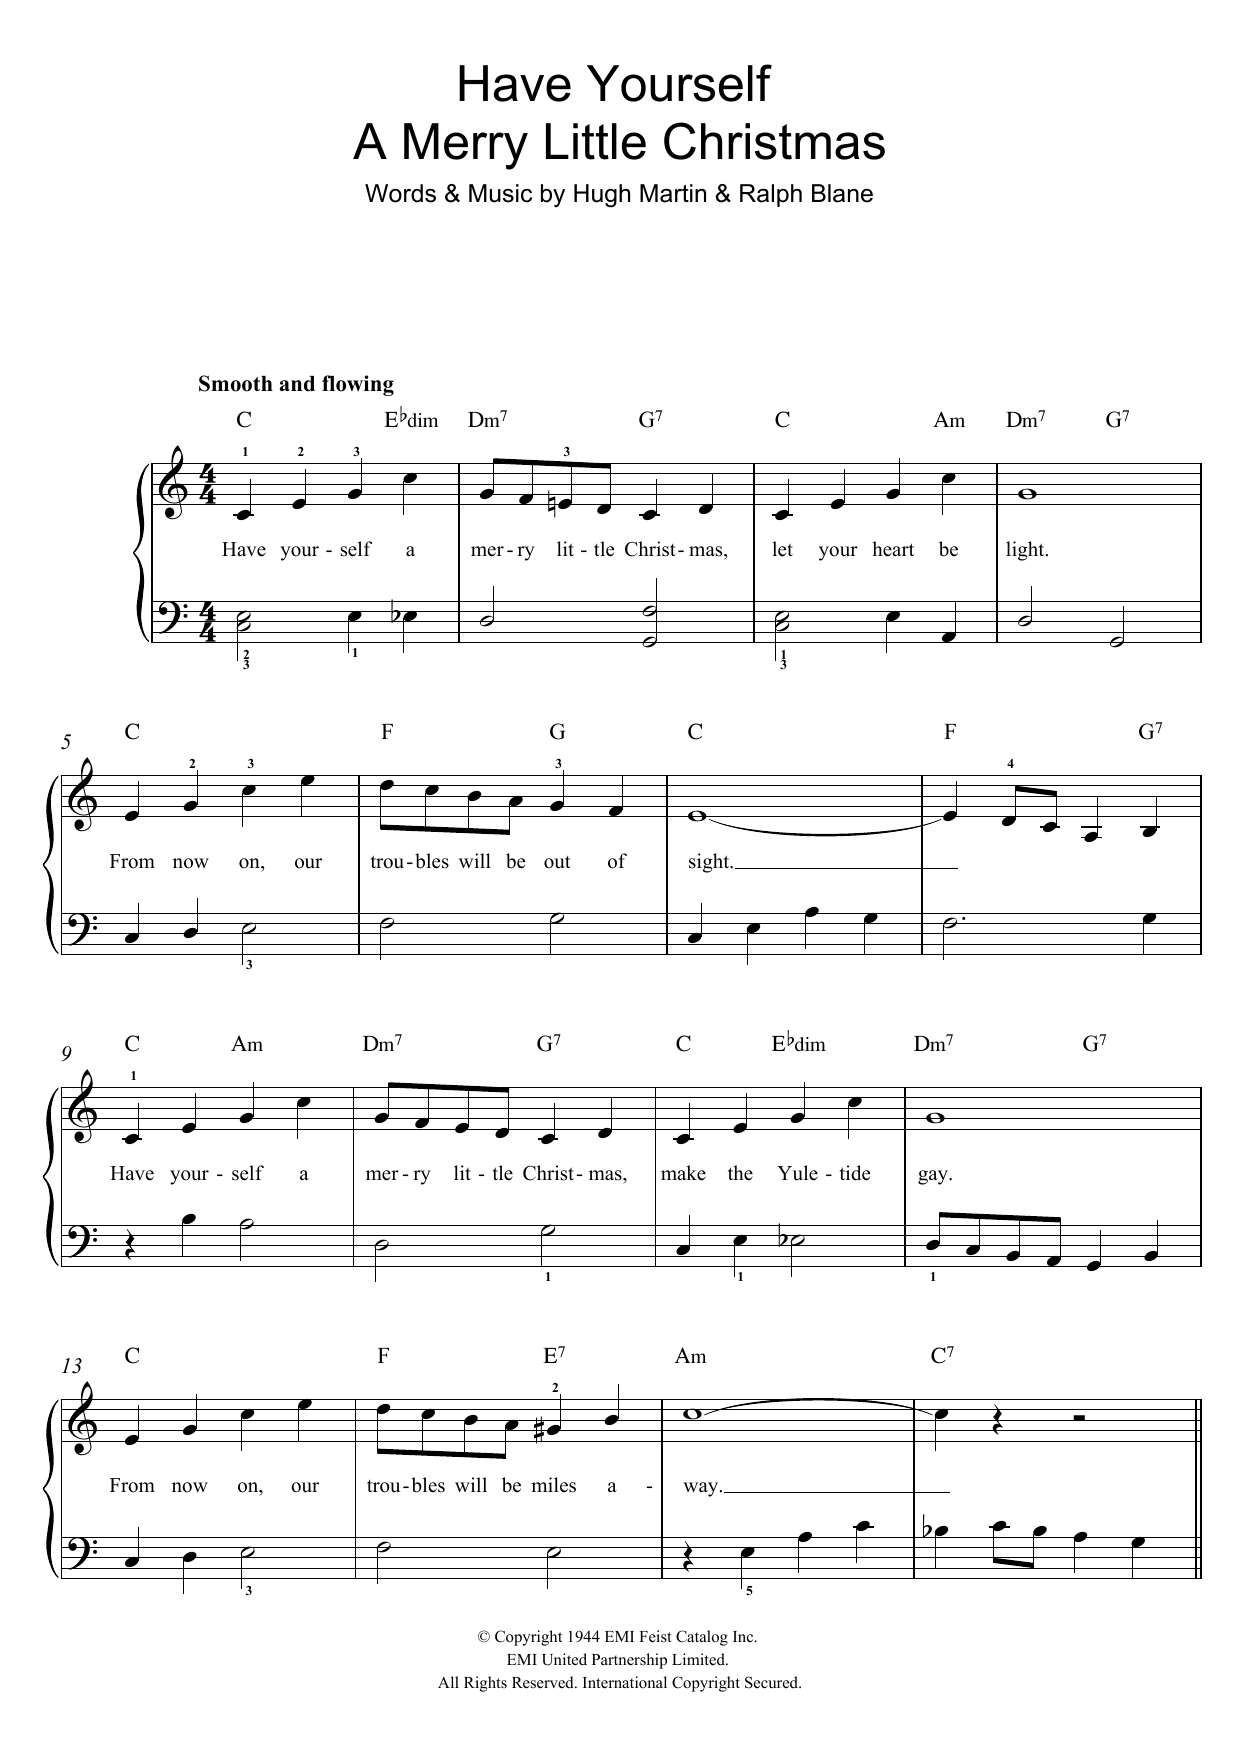 Have Yourself A Merry Little Christmas Sheet Music by Frank Sinatra for Solo - Noteflight Marketplace